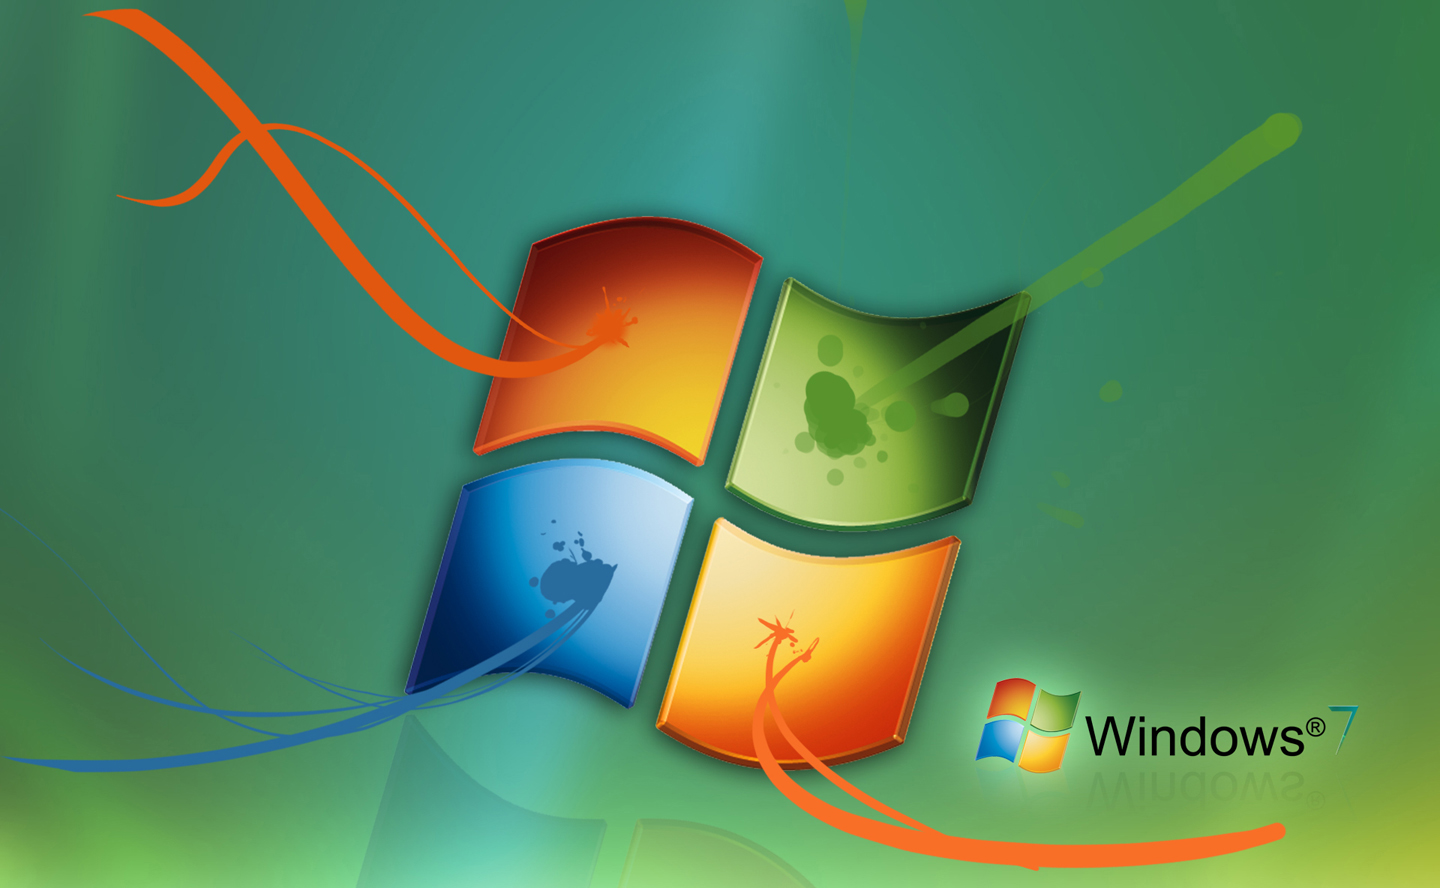 windows-7-wallpaper-hd (7)